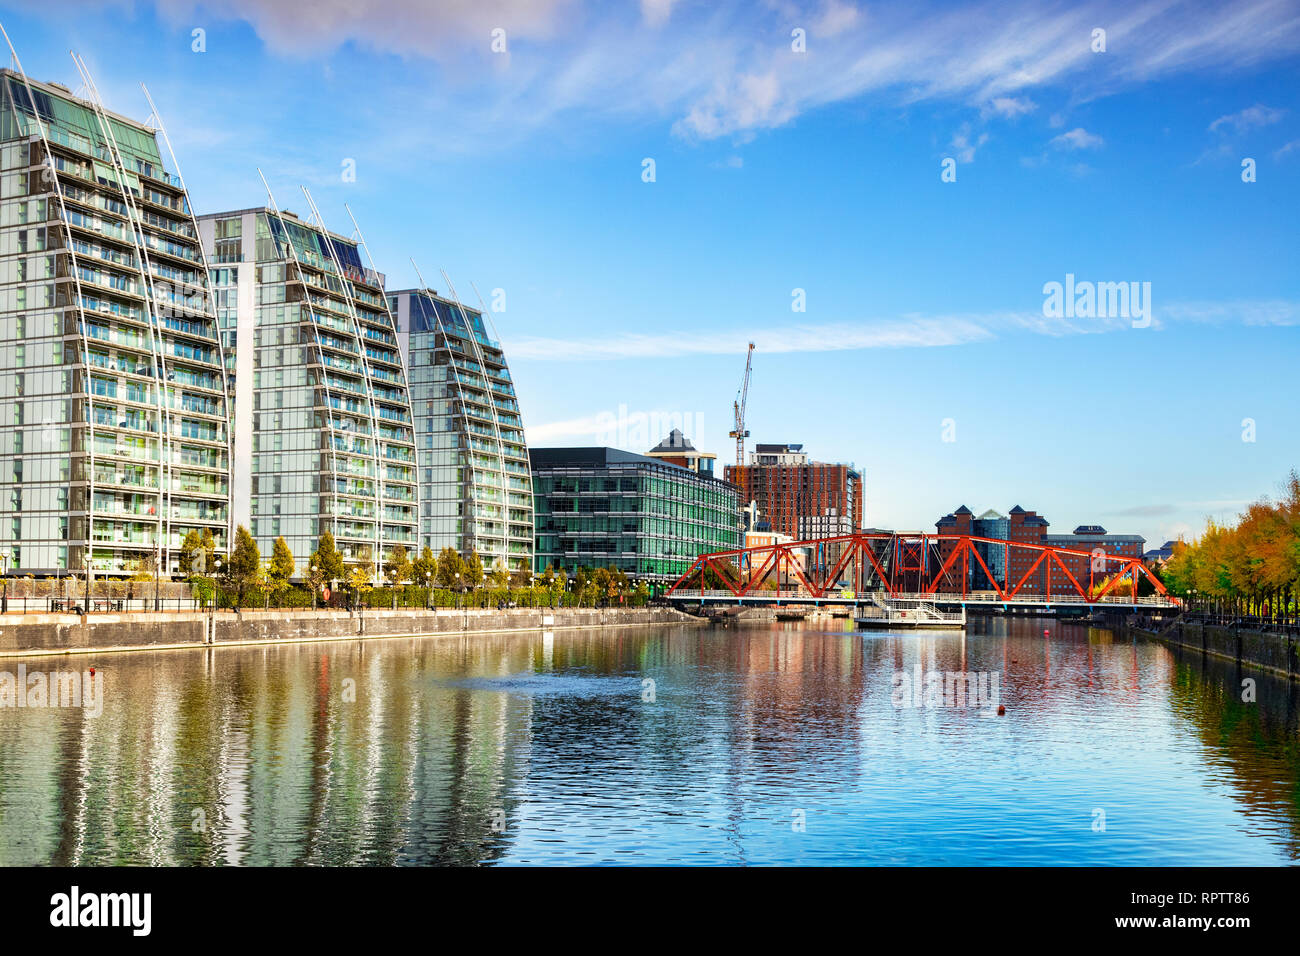 2 November 2018: Salford Quays, Manchester, UK - The Manchester Ship Canal, with the Huron Basin, the Detroit Foot Bridge and the NV apartment buildin - Stock Image